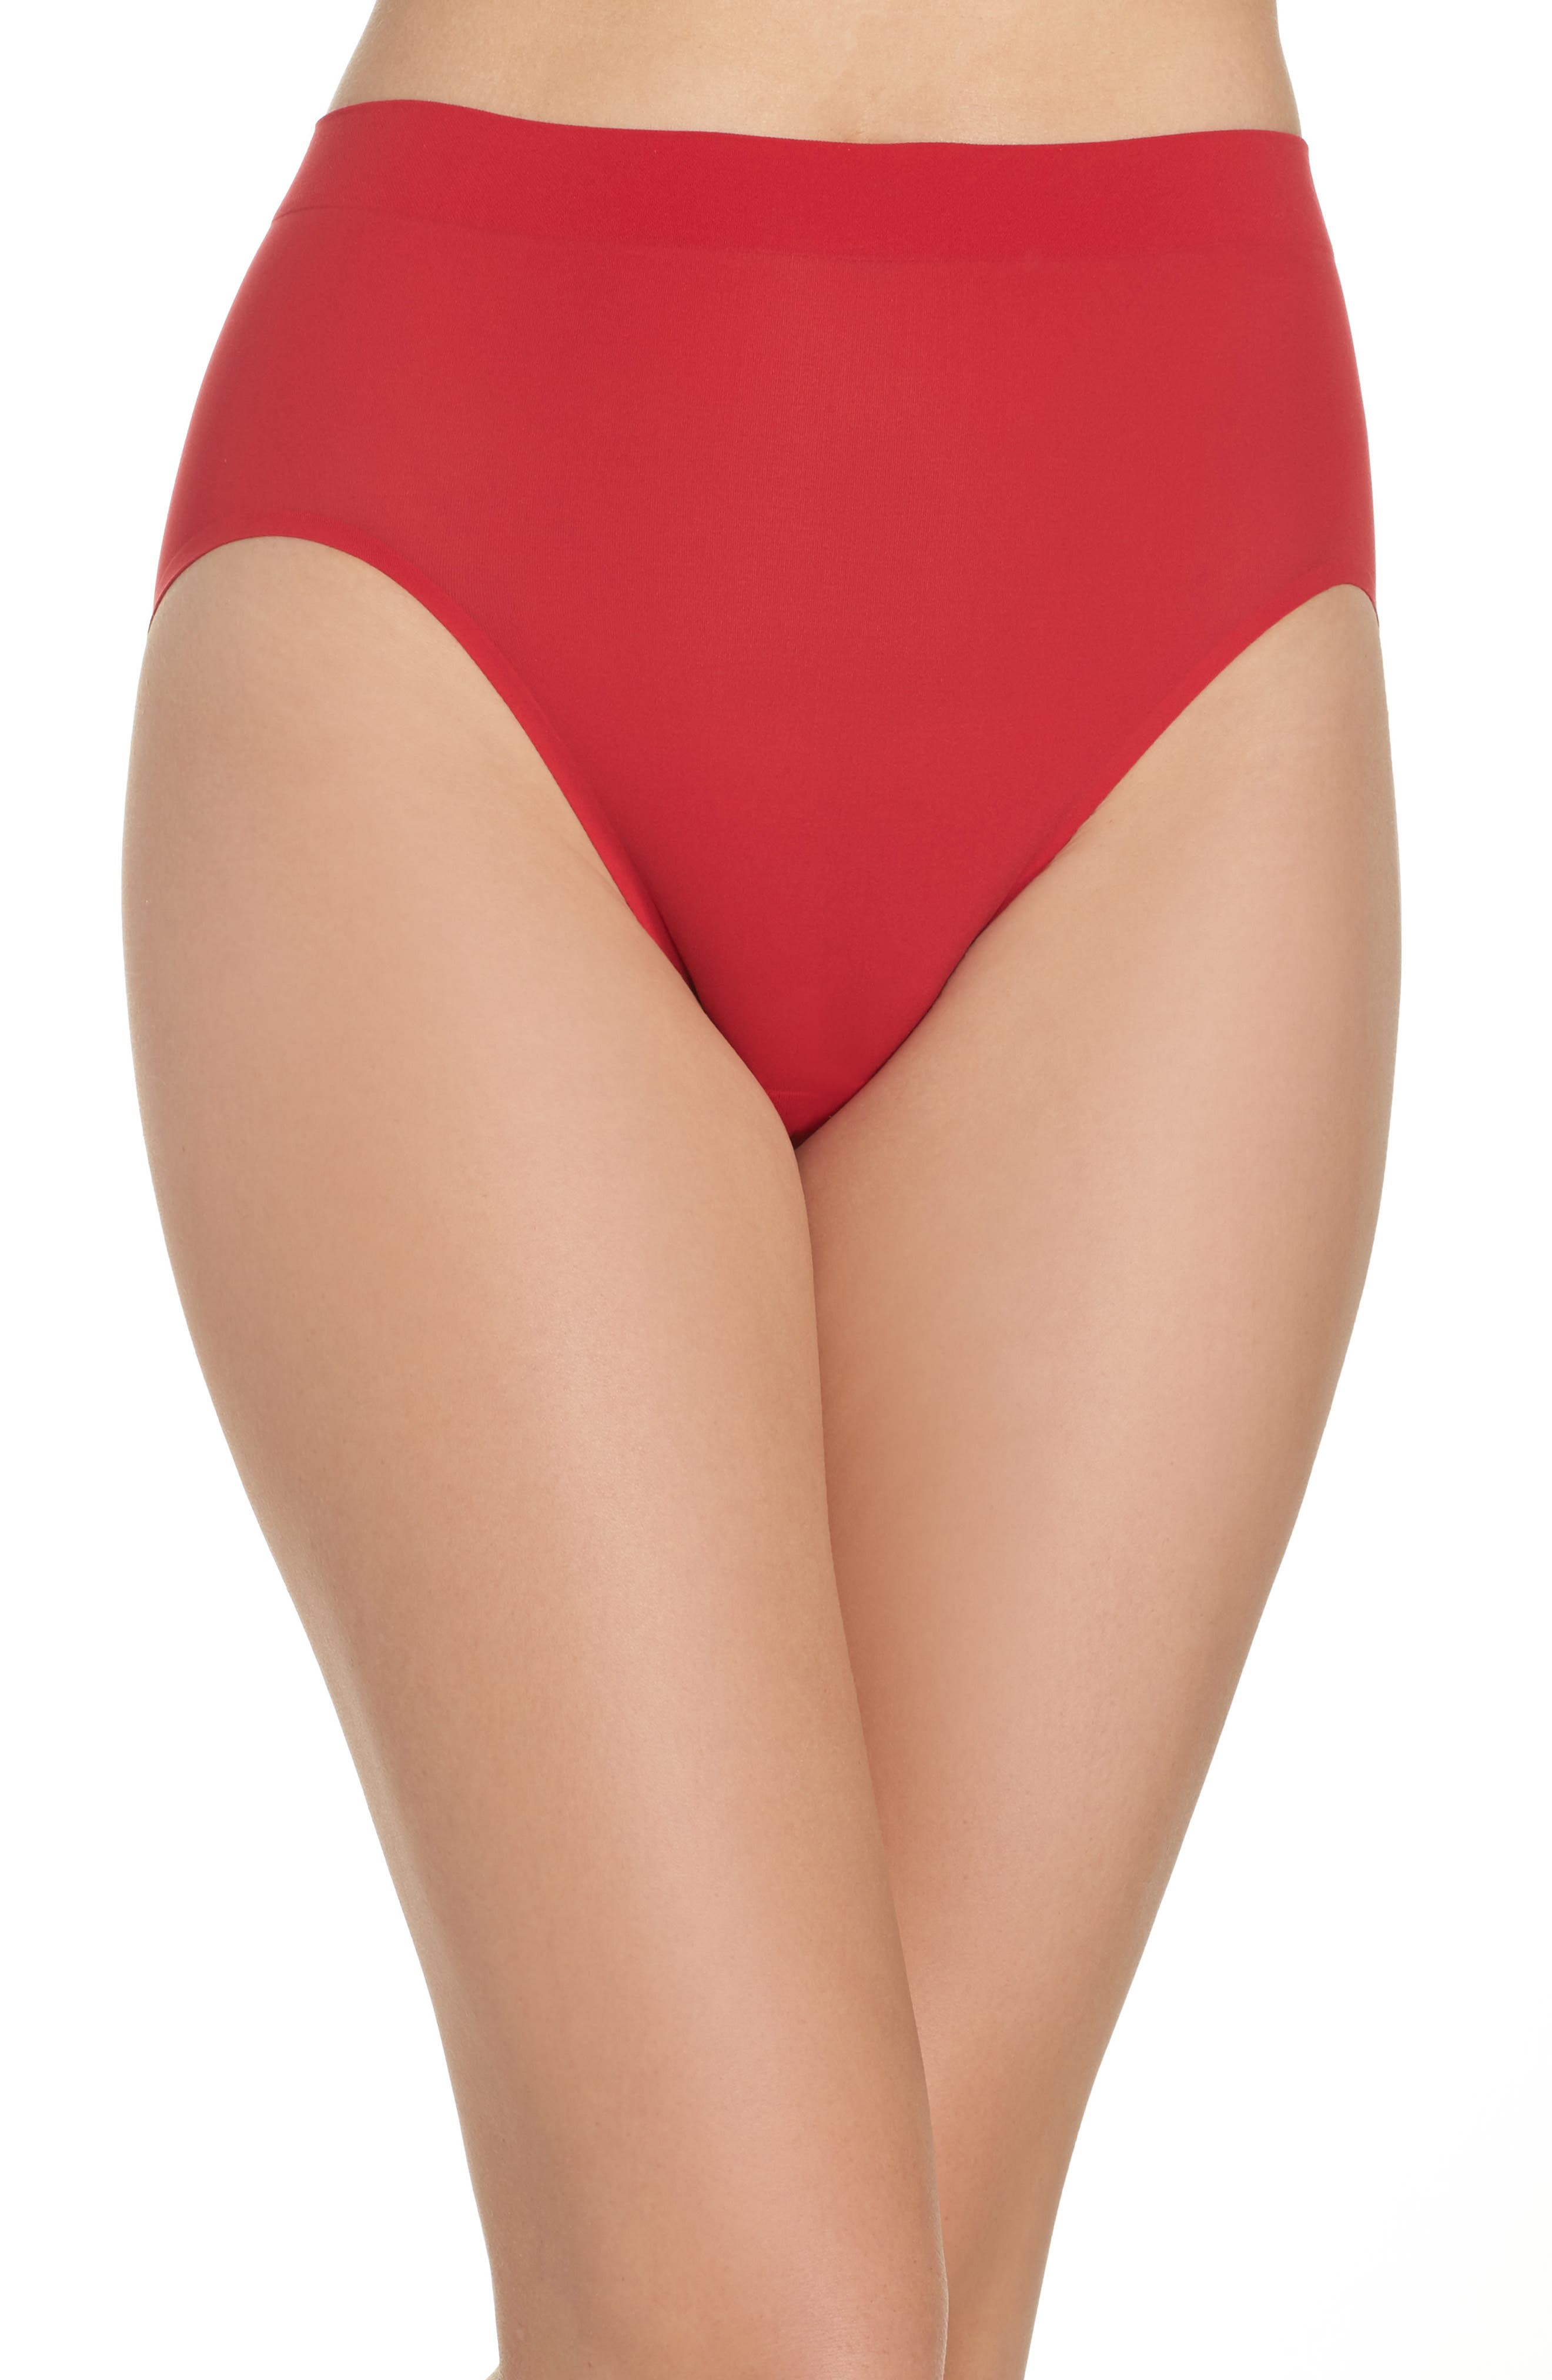 Alternate Image 1 Selected - Wacoal 'Skinsense' Seamless High Cut Briefs (3 for $45)